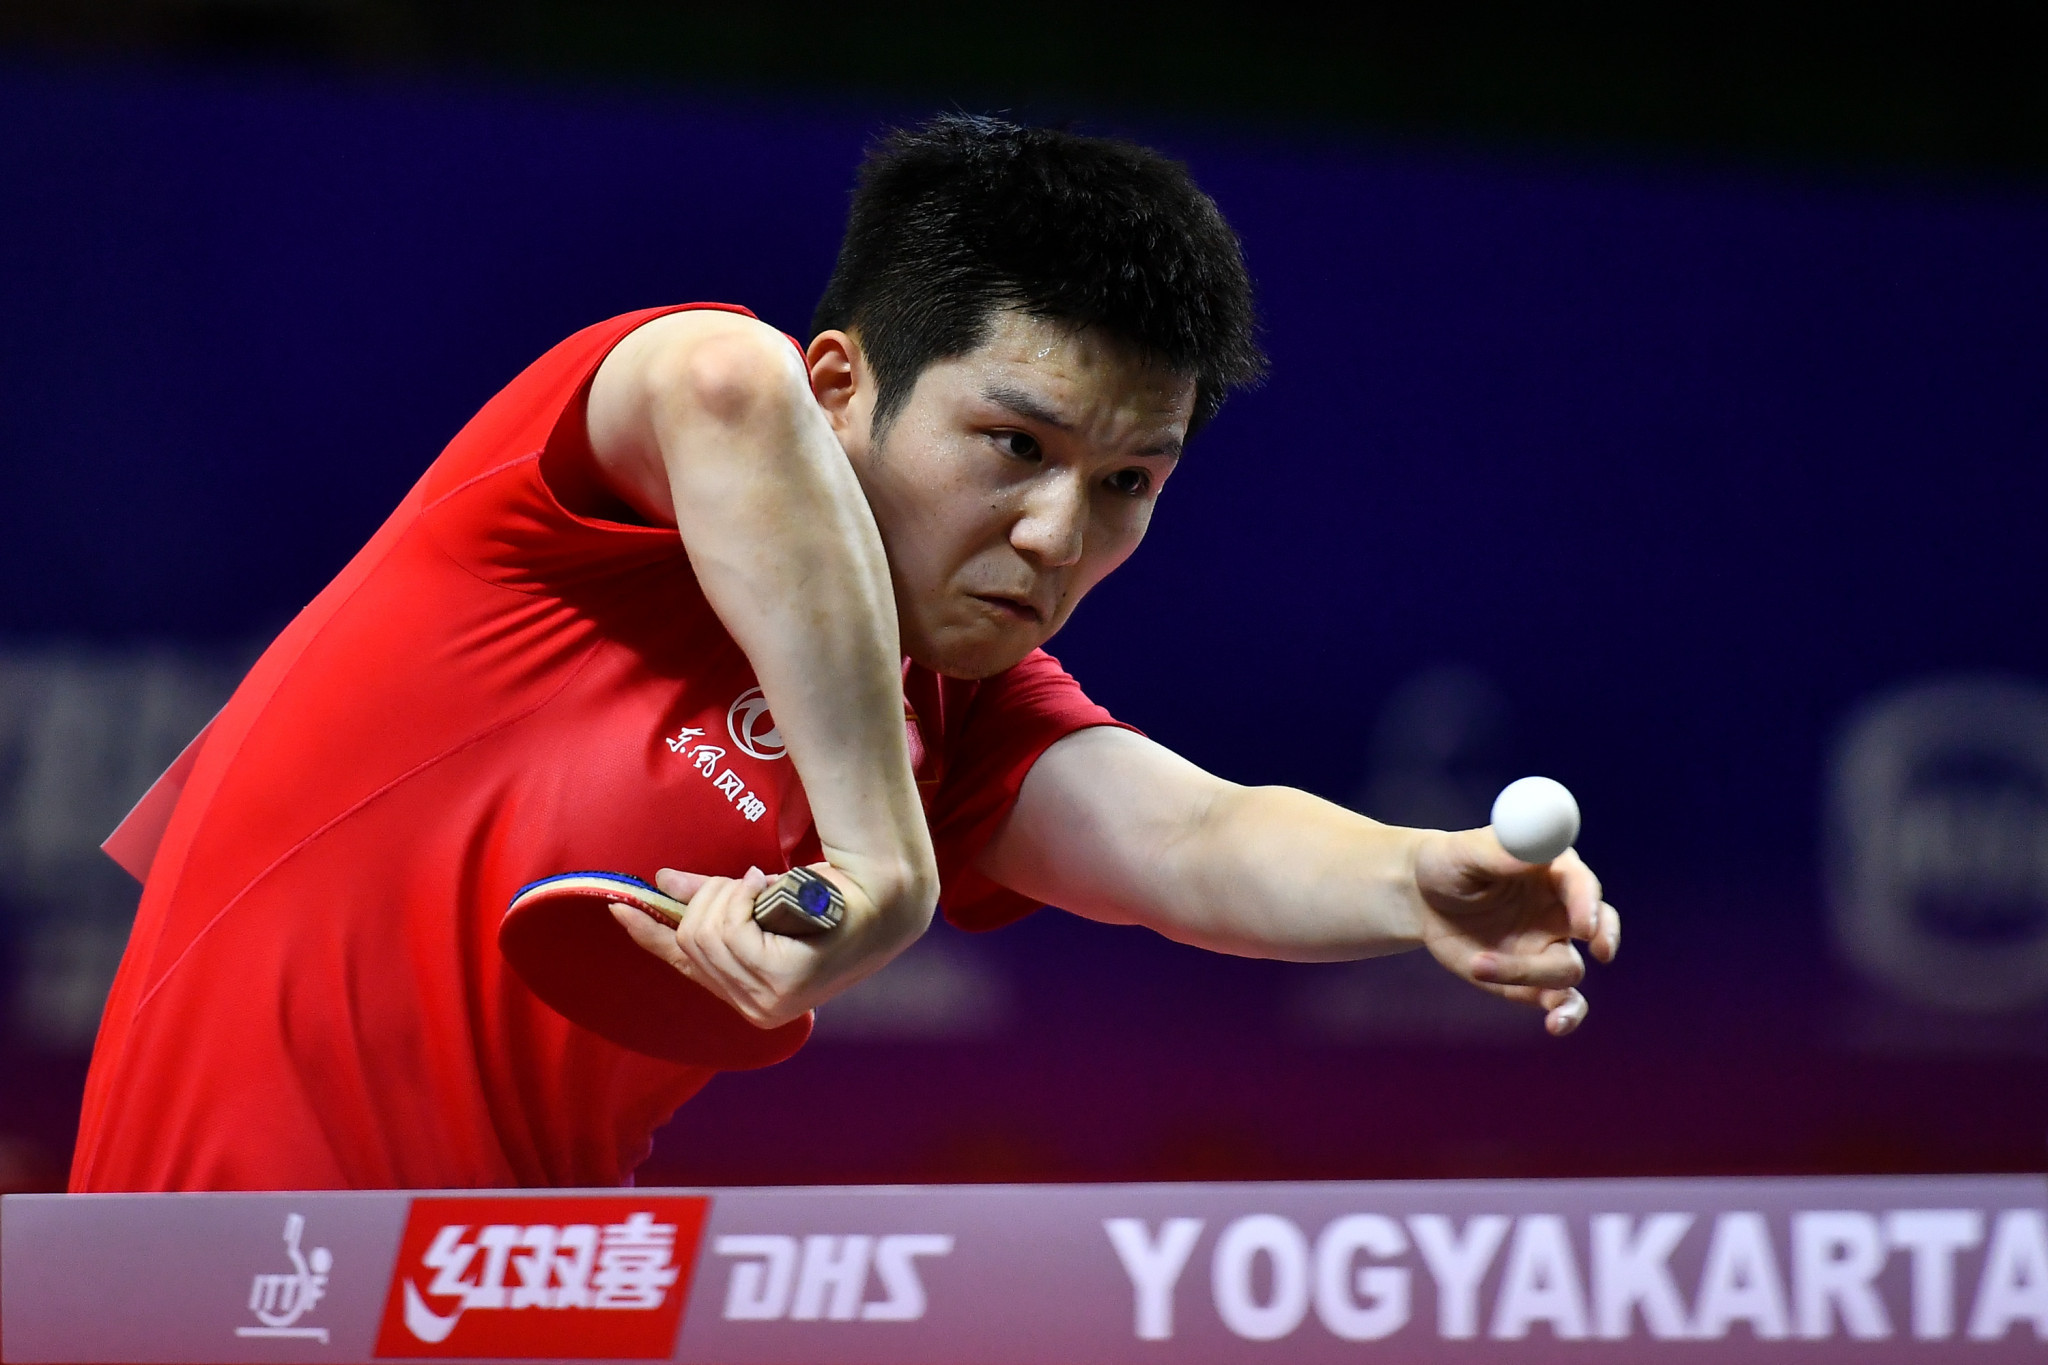 Fan Zhendong made a strong start to his bid for ITTF Swedish Open history this week as he won his opening round match ©Getty Images